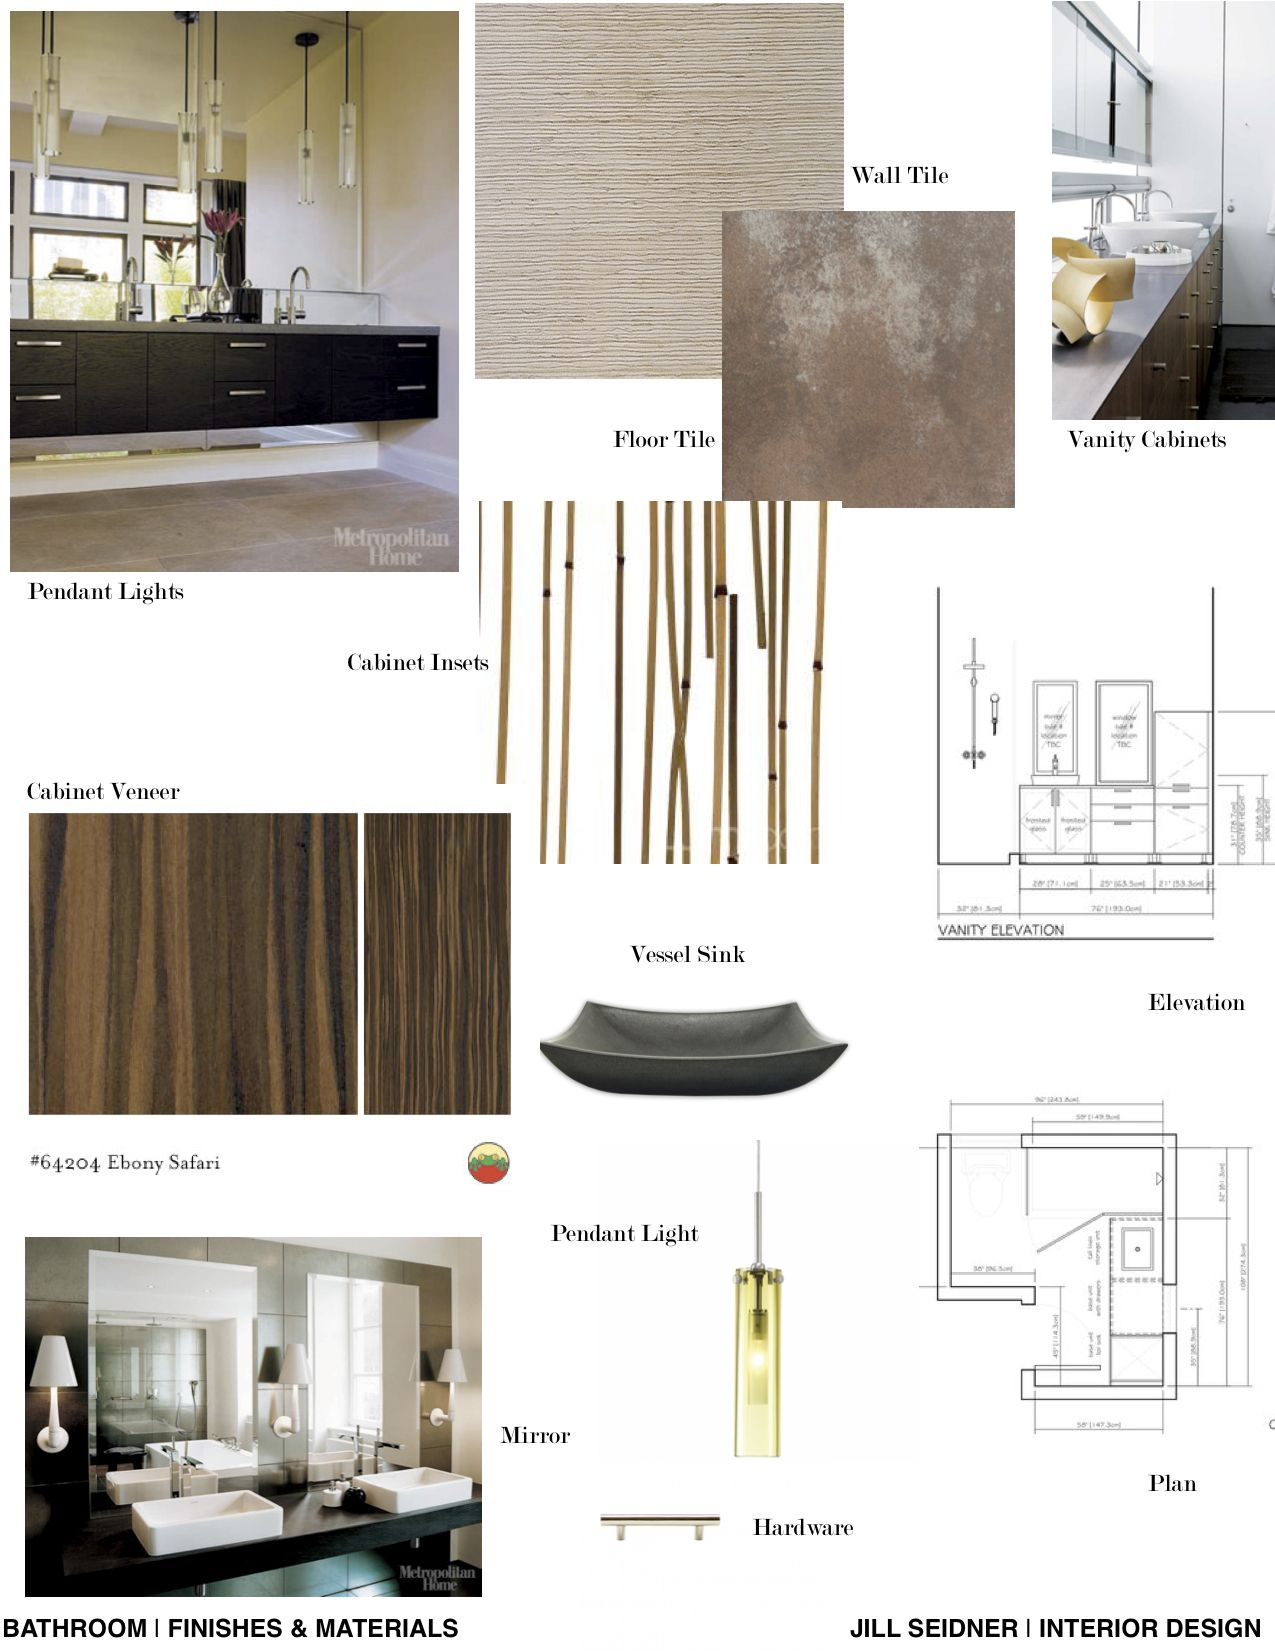 Concept board for a spa bathroom jill seidner interior for Bathroom interior design concepts